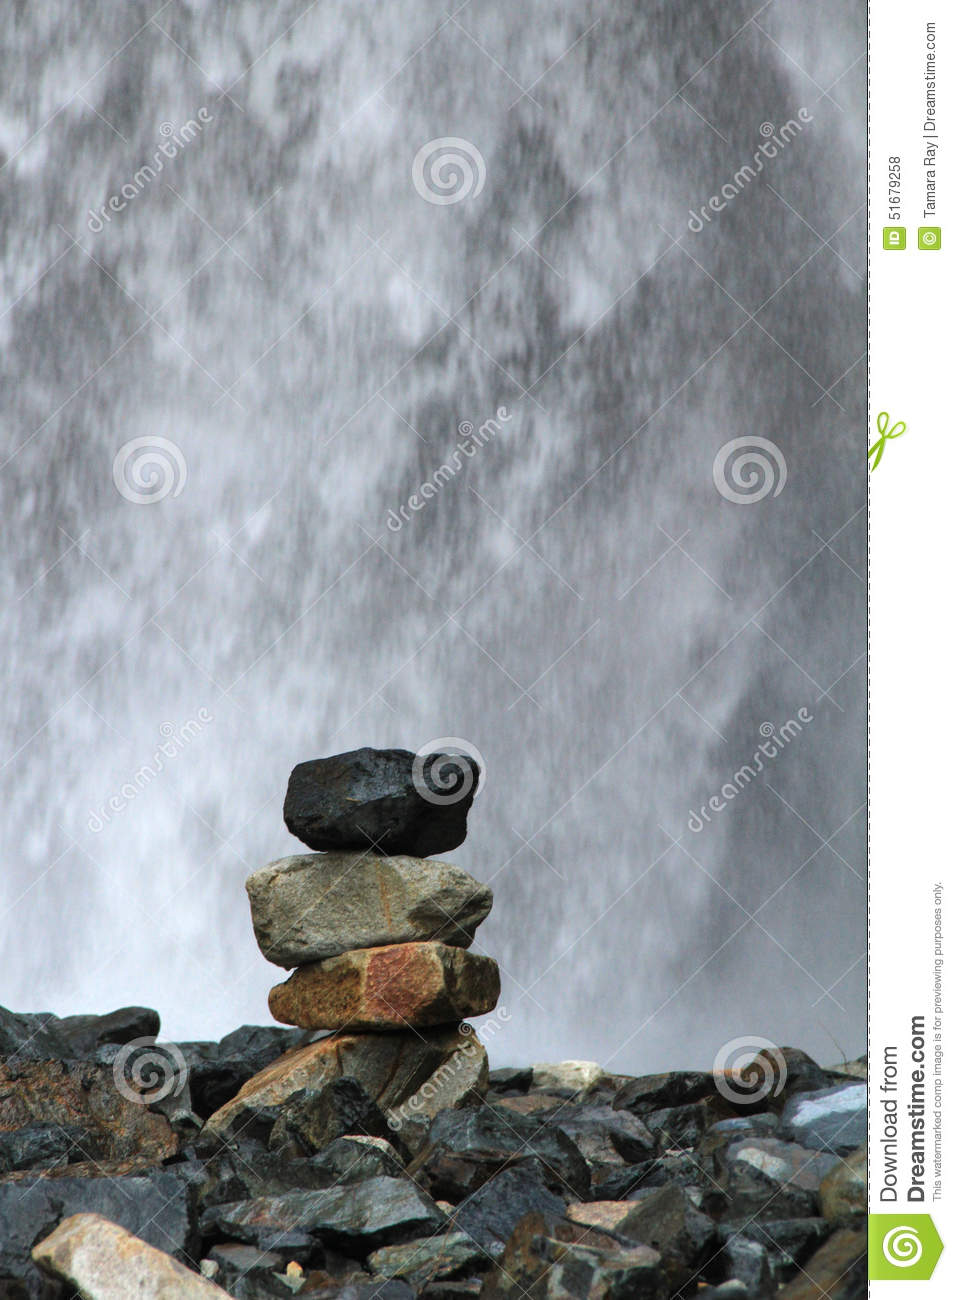 Stacked Rocks In Front Of Waterfall Stock Photo - Image of